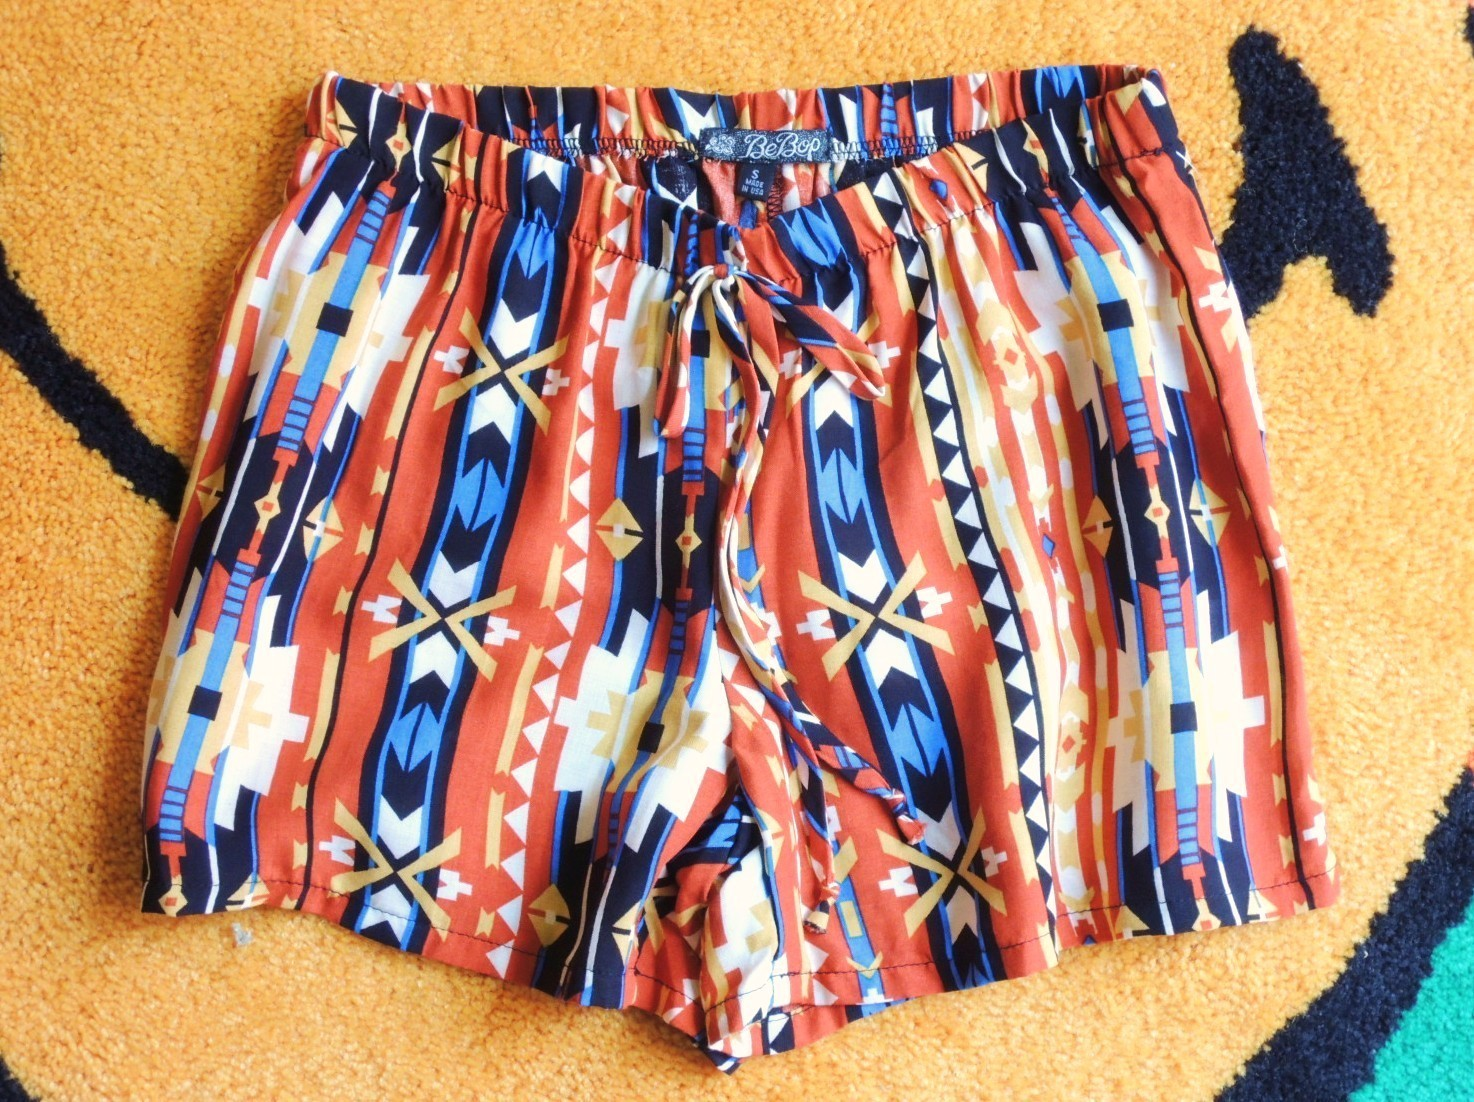 nativestripedshorts_rd01.JPG